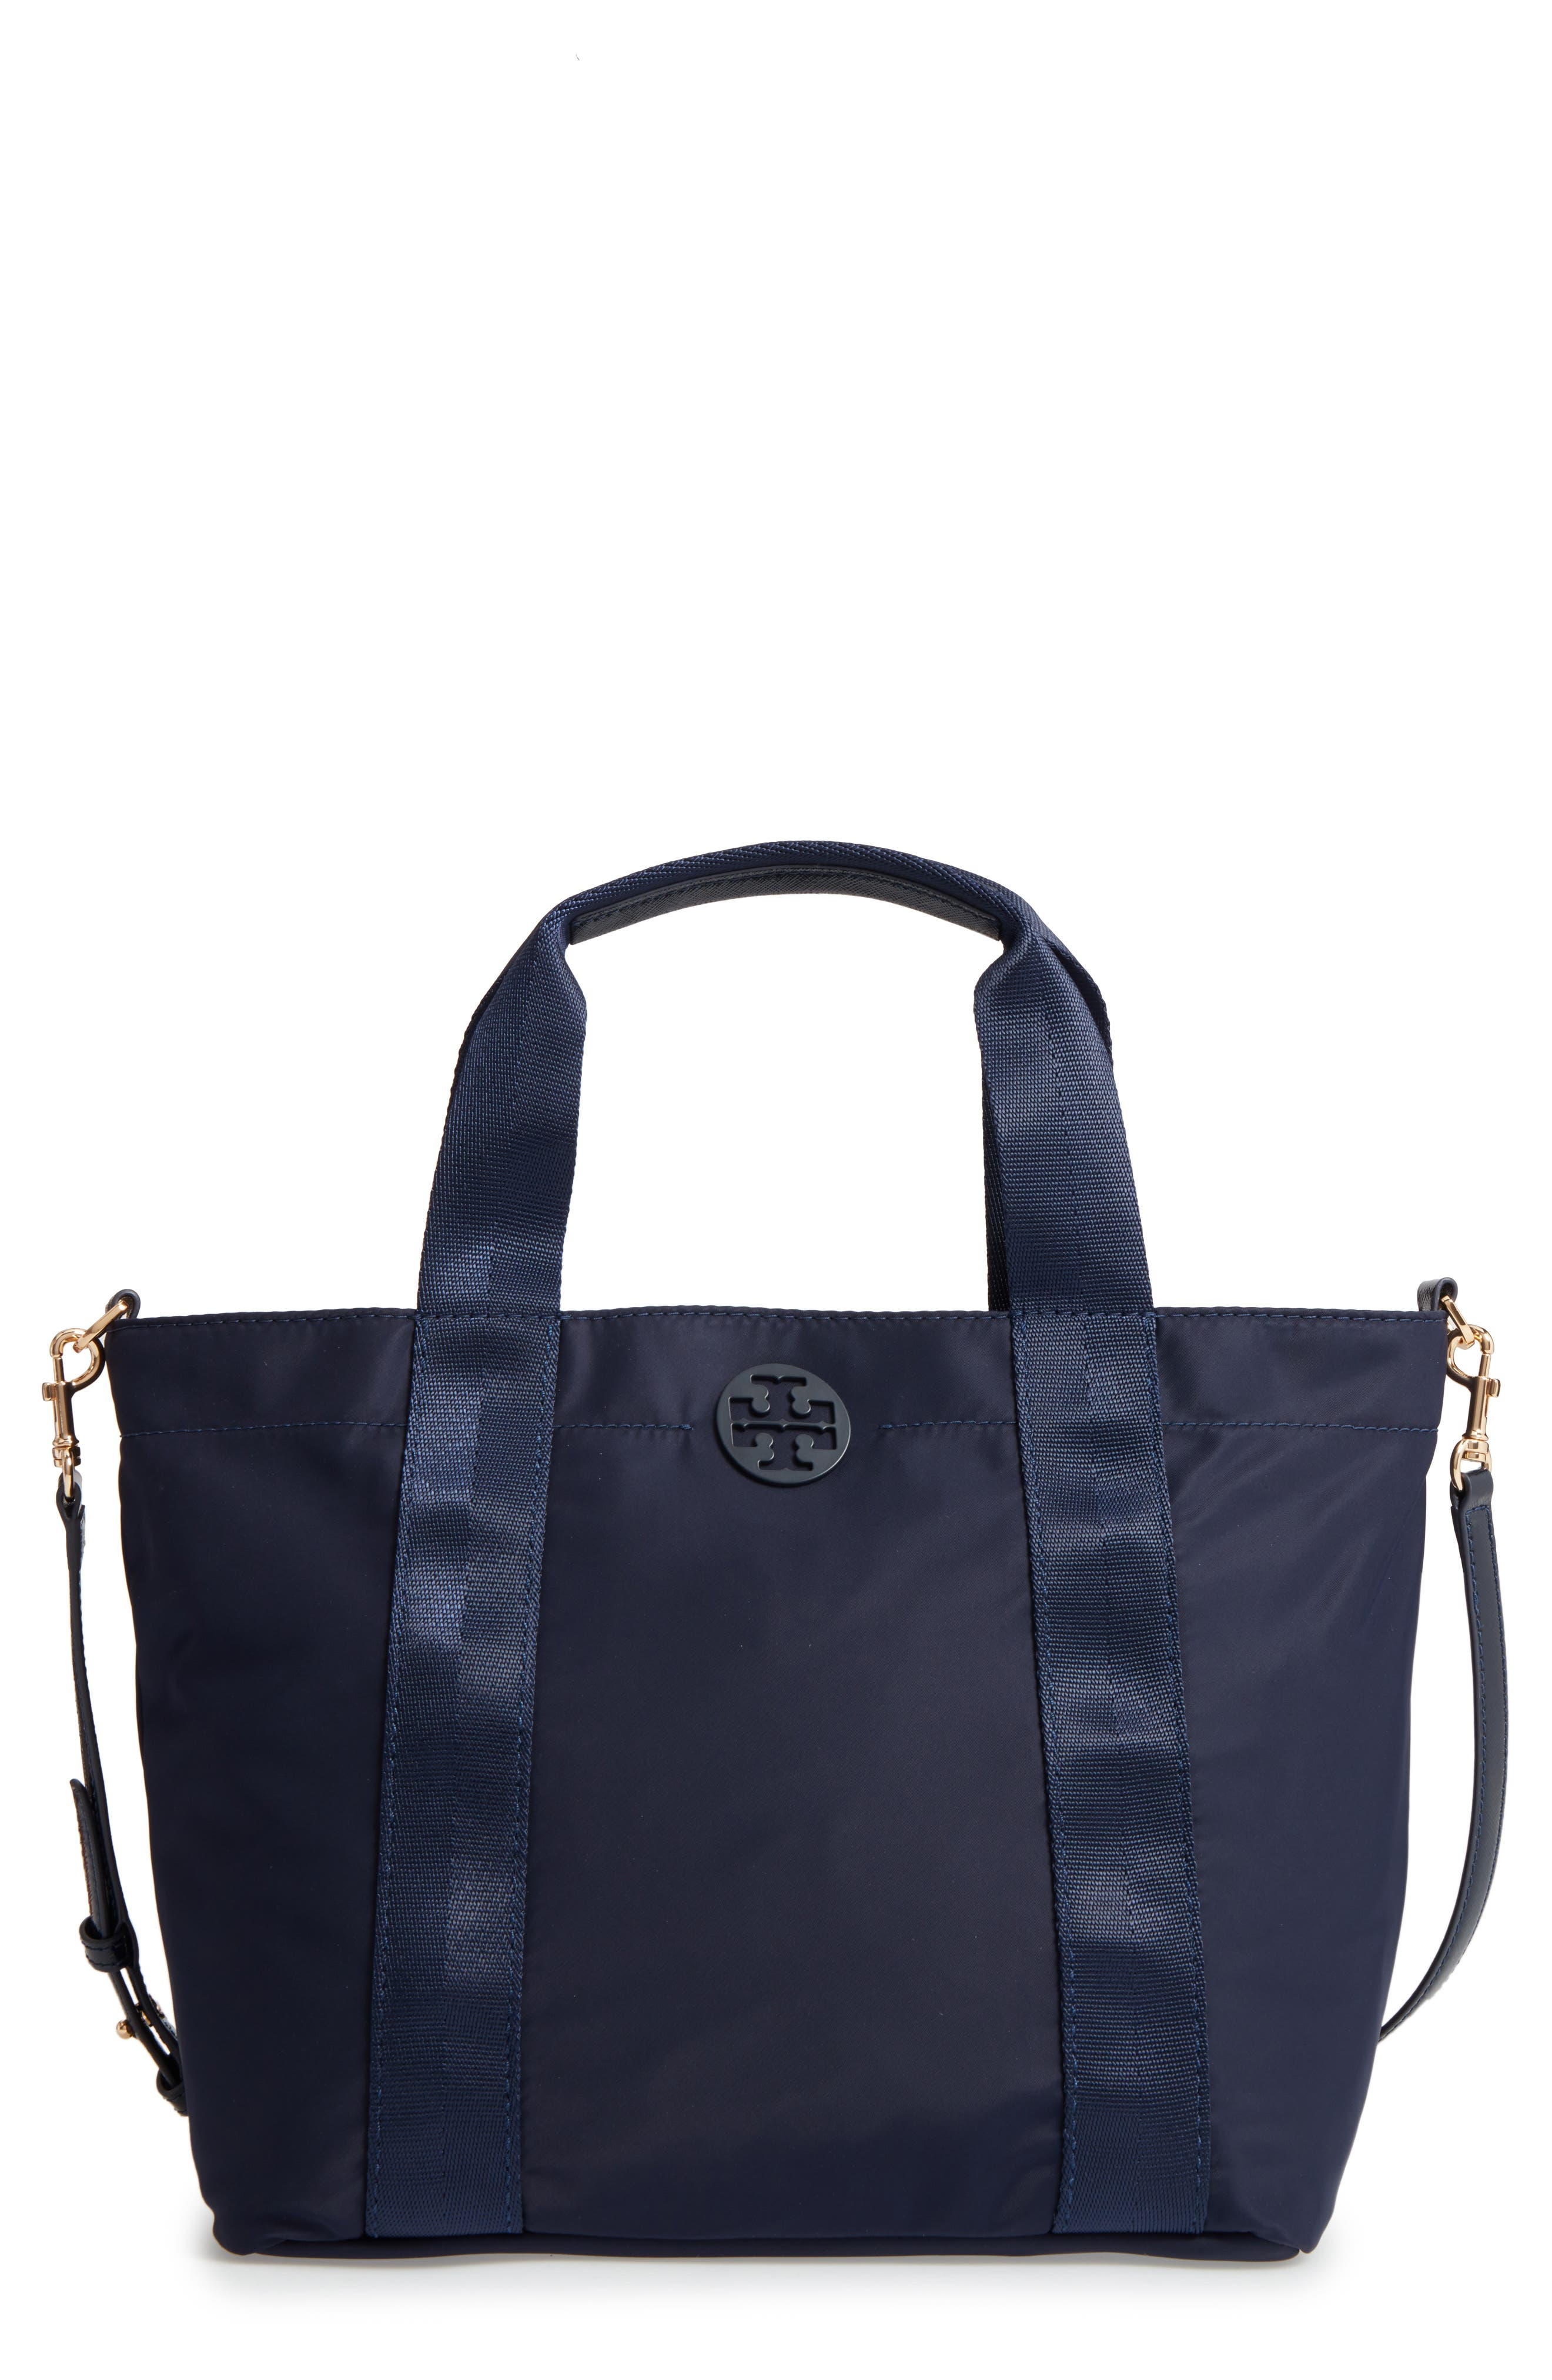 TORY BURCH Small Quinn Nylon Tote